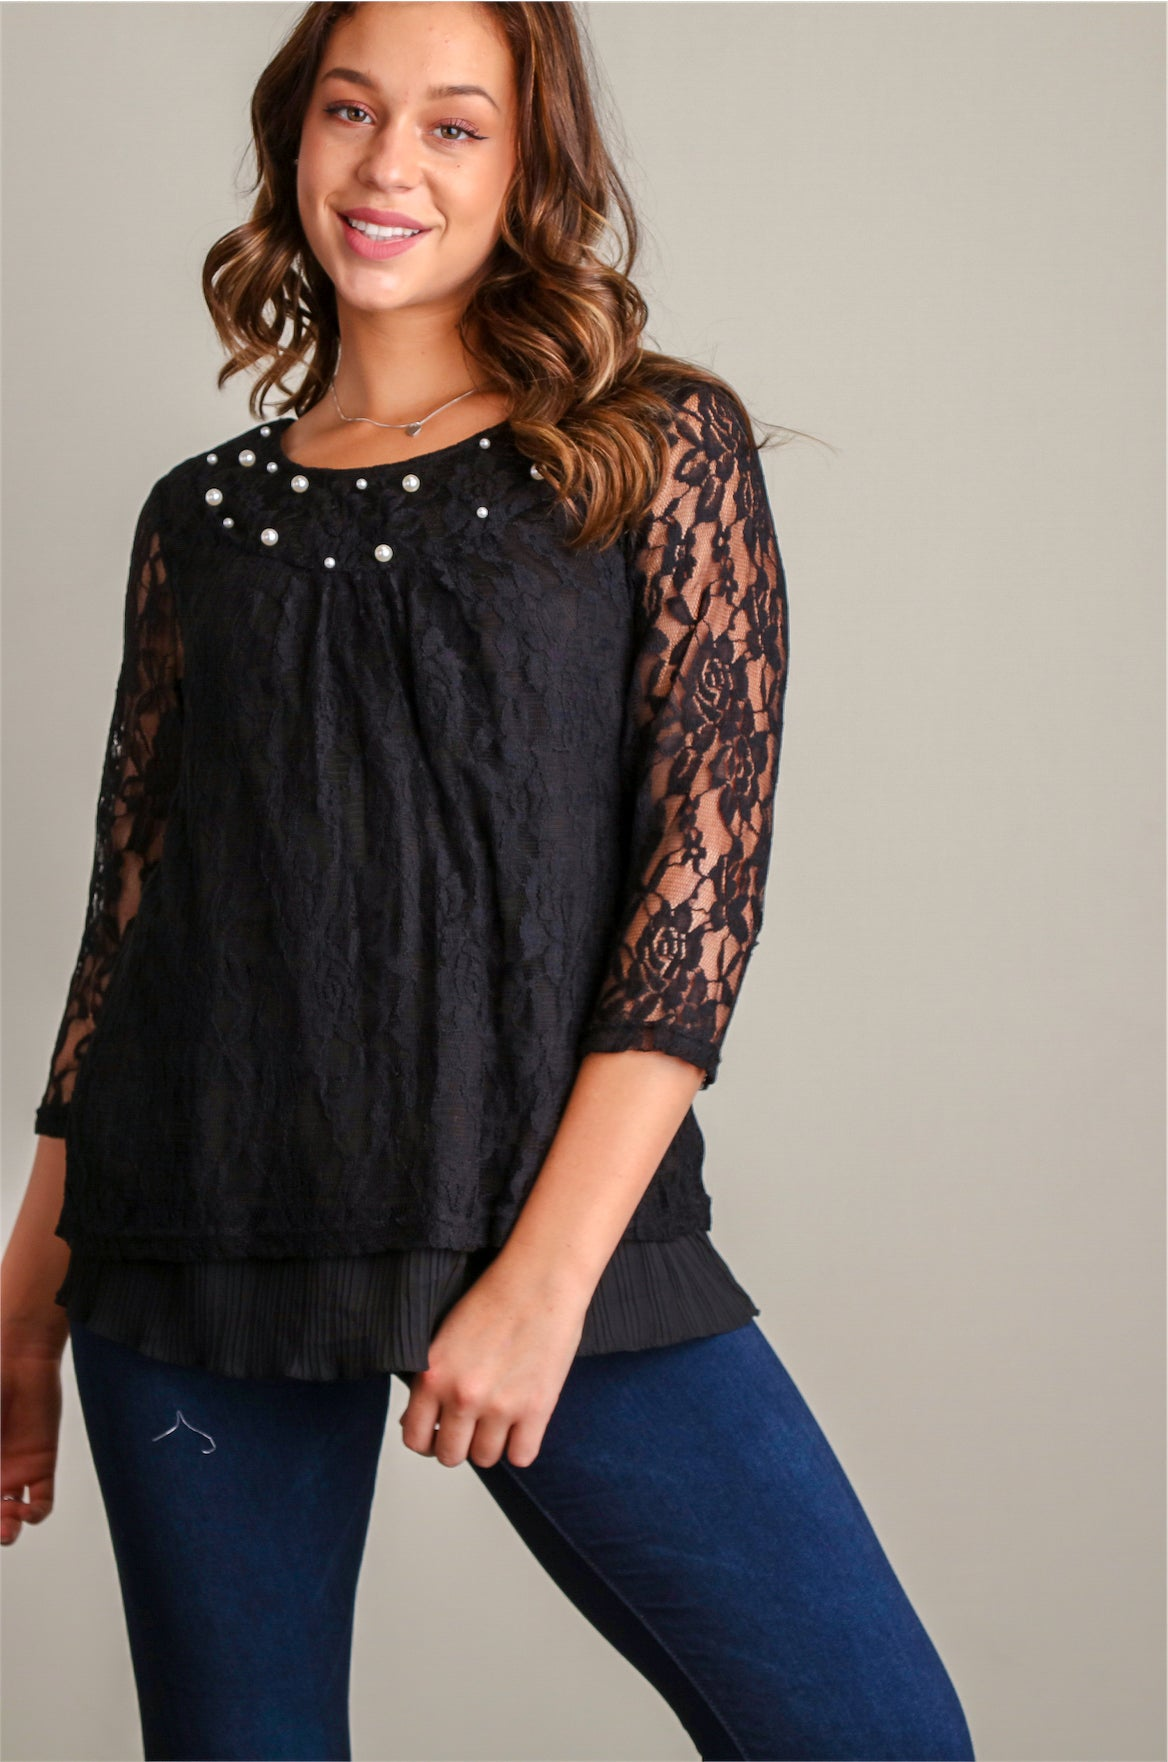 Black Lace and Pearl Dressy Blouse